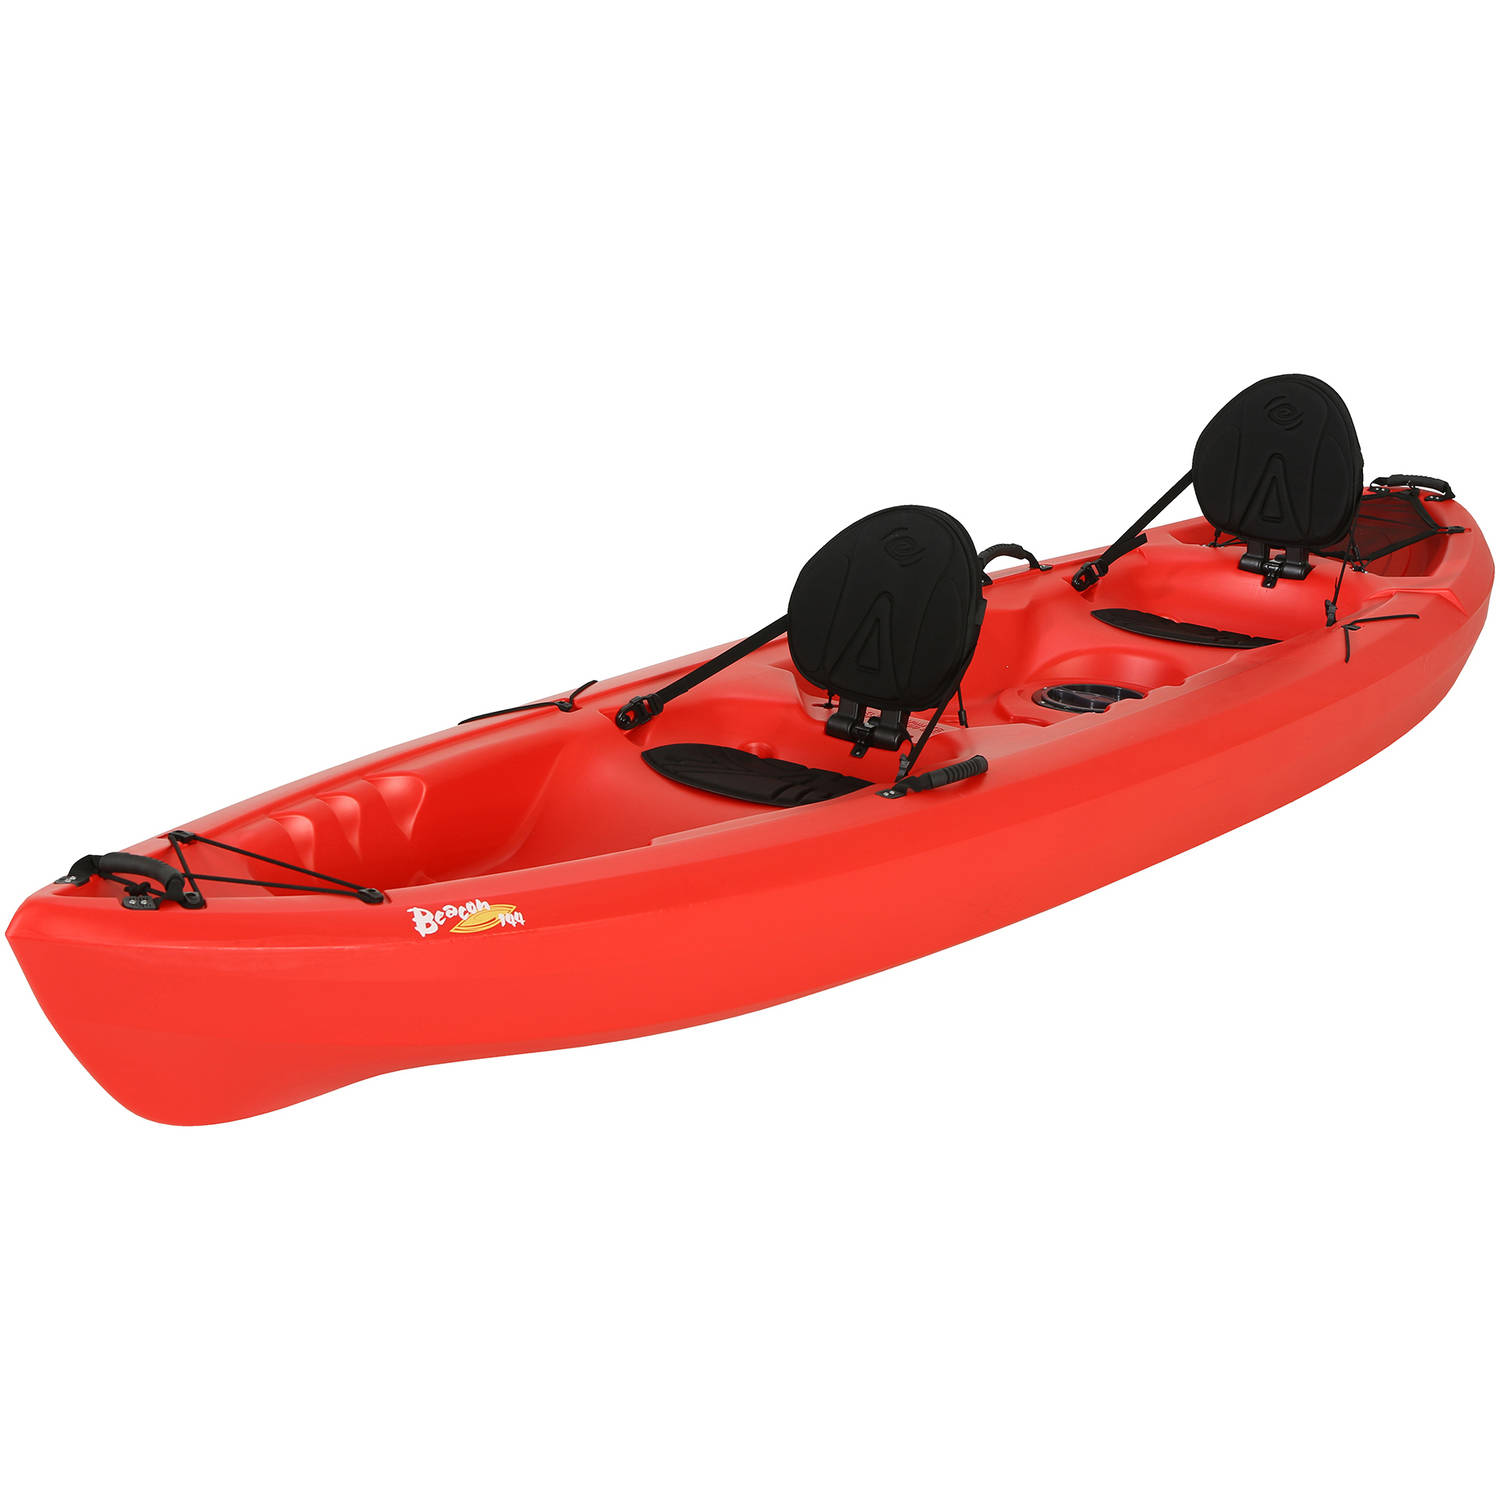 Lifetime 12' Beacon Sit On Top Tandem Kayak, Red, 90620 by Lifetime Products